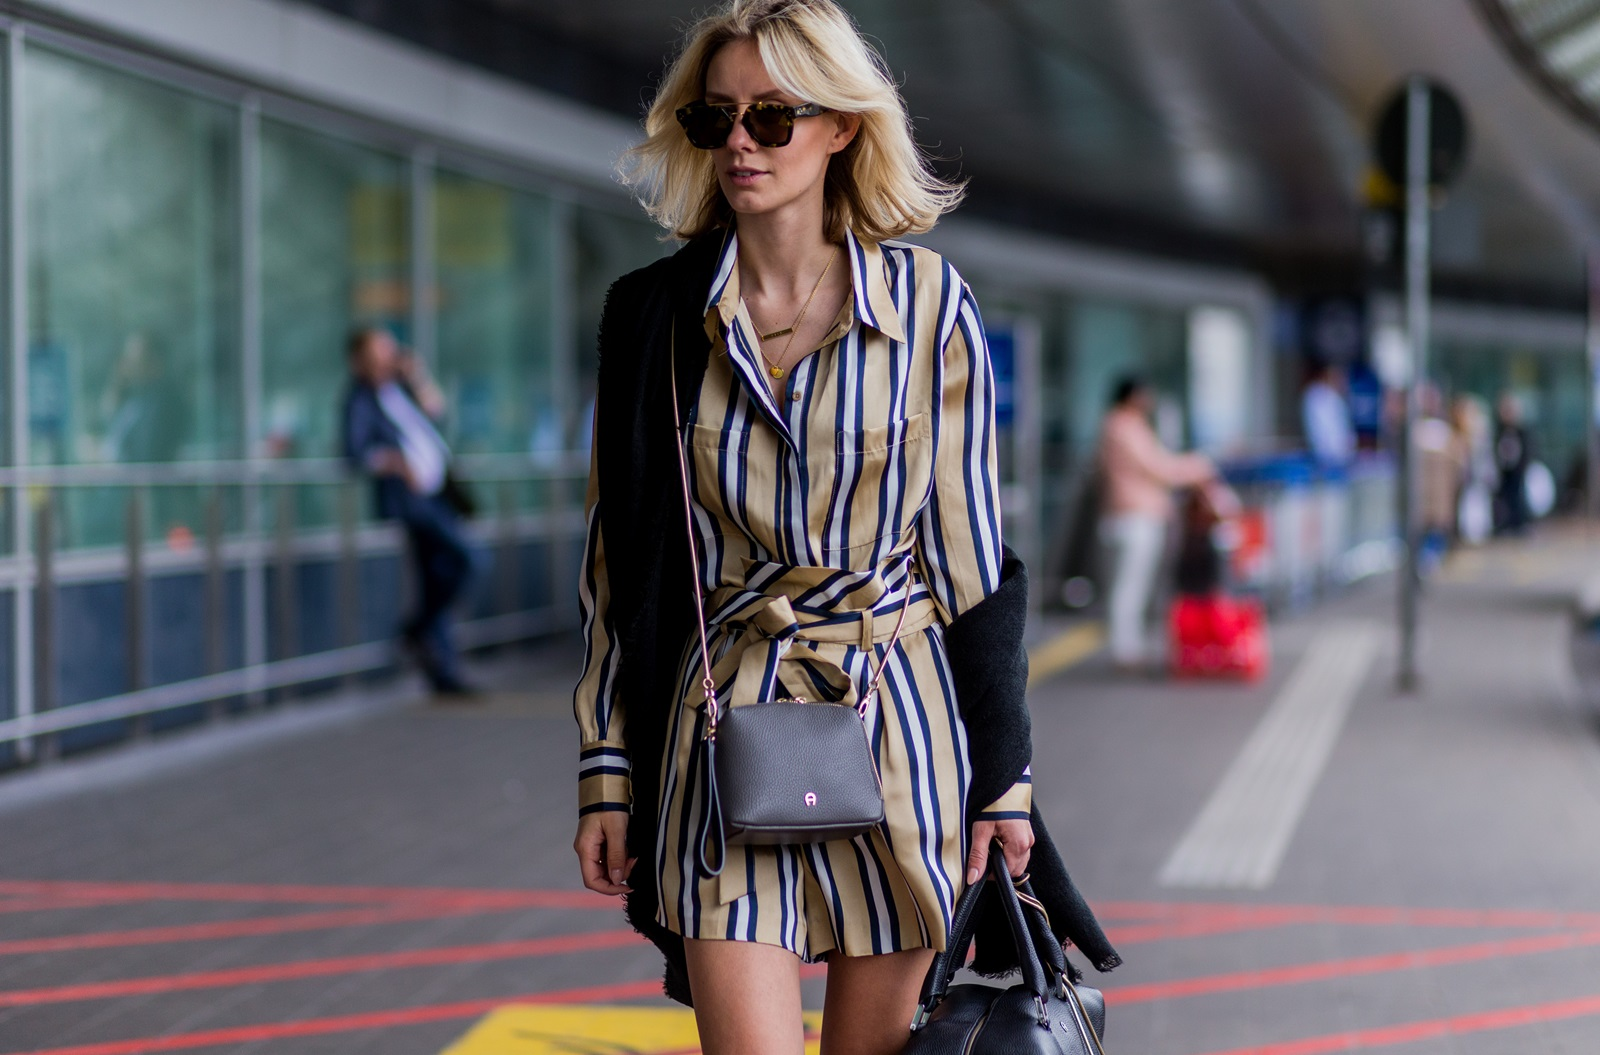 DUESSELDORF, GERMANY - JUNE 1: Lisa Hahnbueck at the airport wearing a striped blouse and shorts from Finders Keepers, black Celine sunglasses, a black scarf a black weekender bag from Aigner Munich and golden bag on June 1, 2016 in Duesseldorf, Germany. (Photo by Christian Vierig/Getty Images) *** Local Caption *** Lisa Hahnbueck